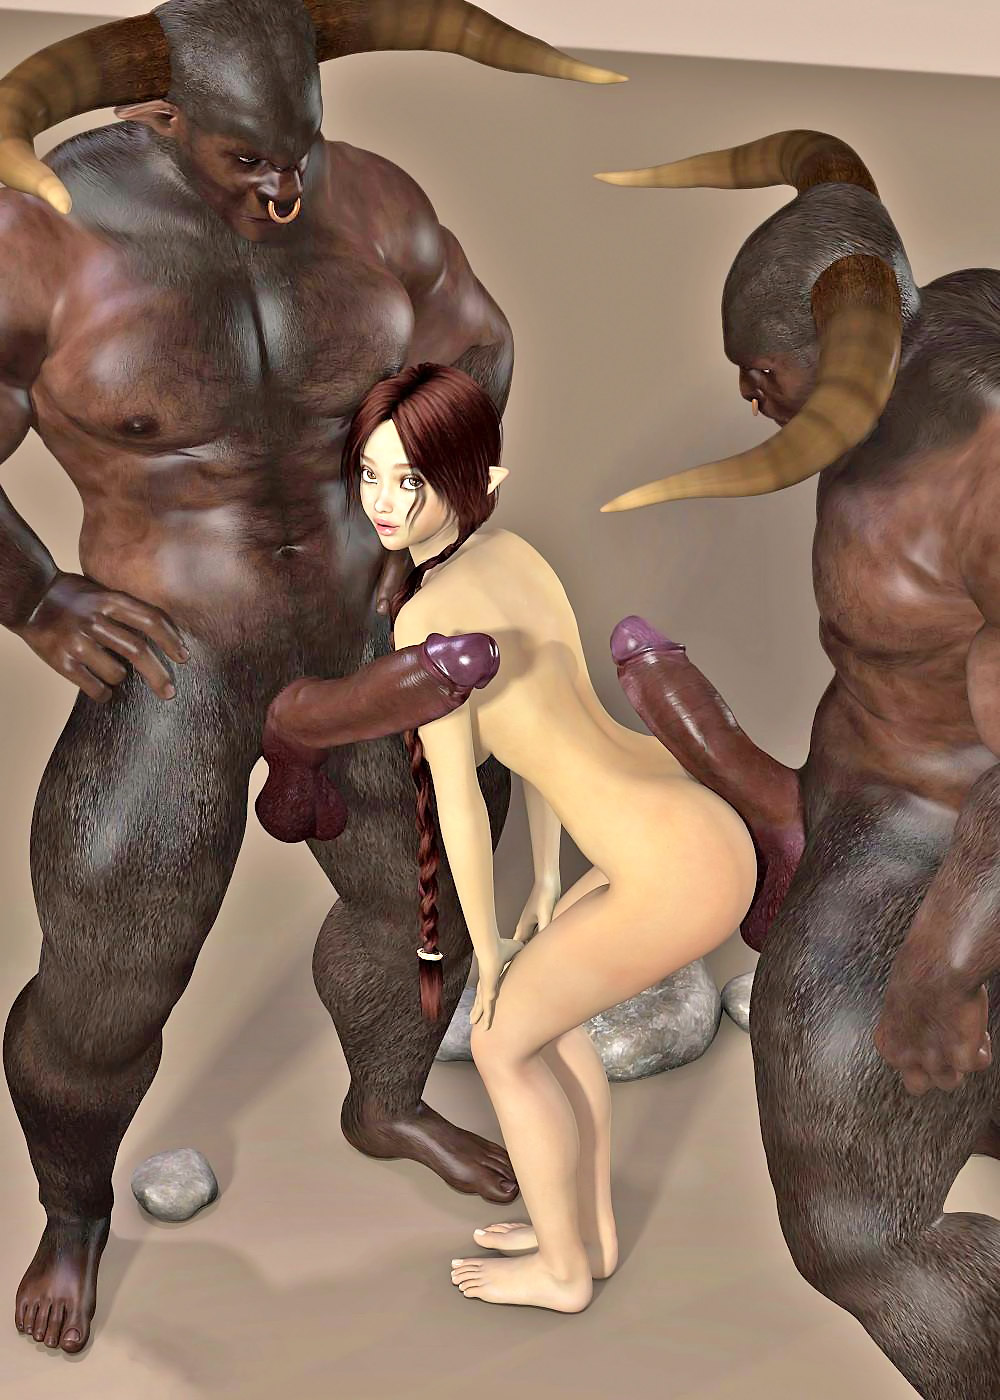 Yaoi monster cock 3d nude galleries